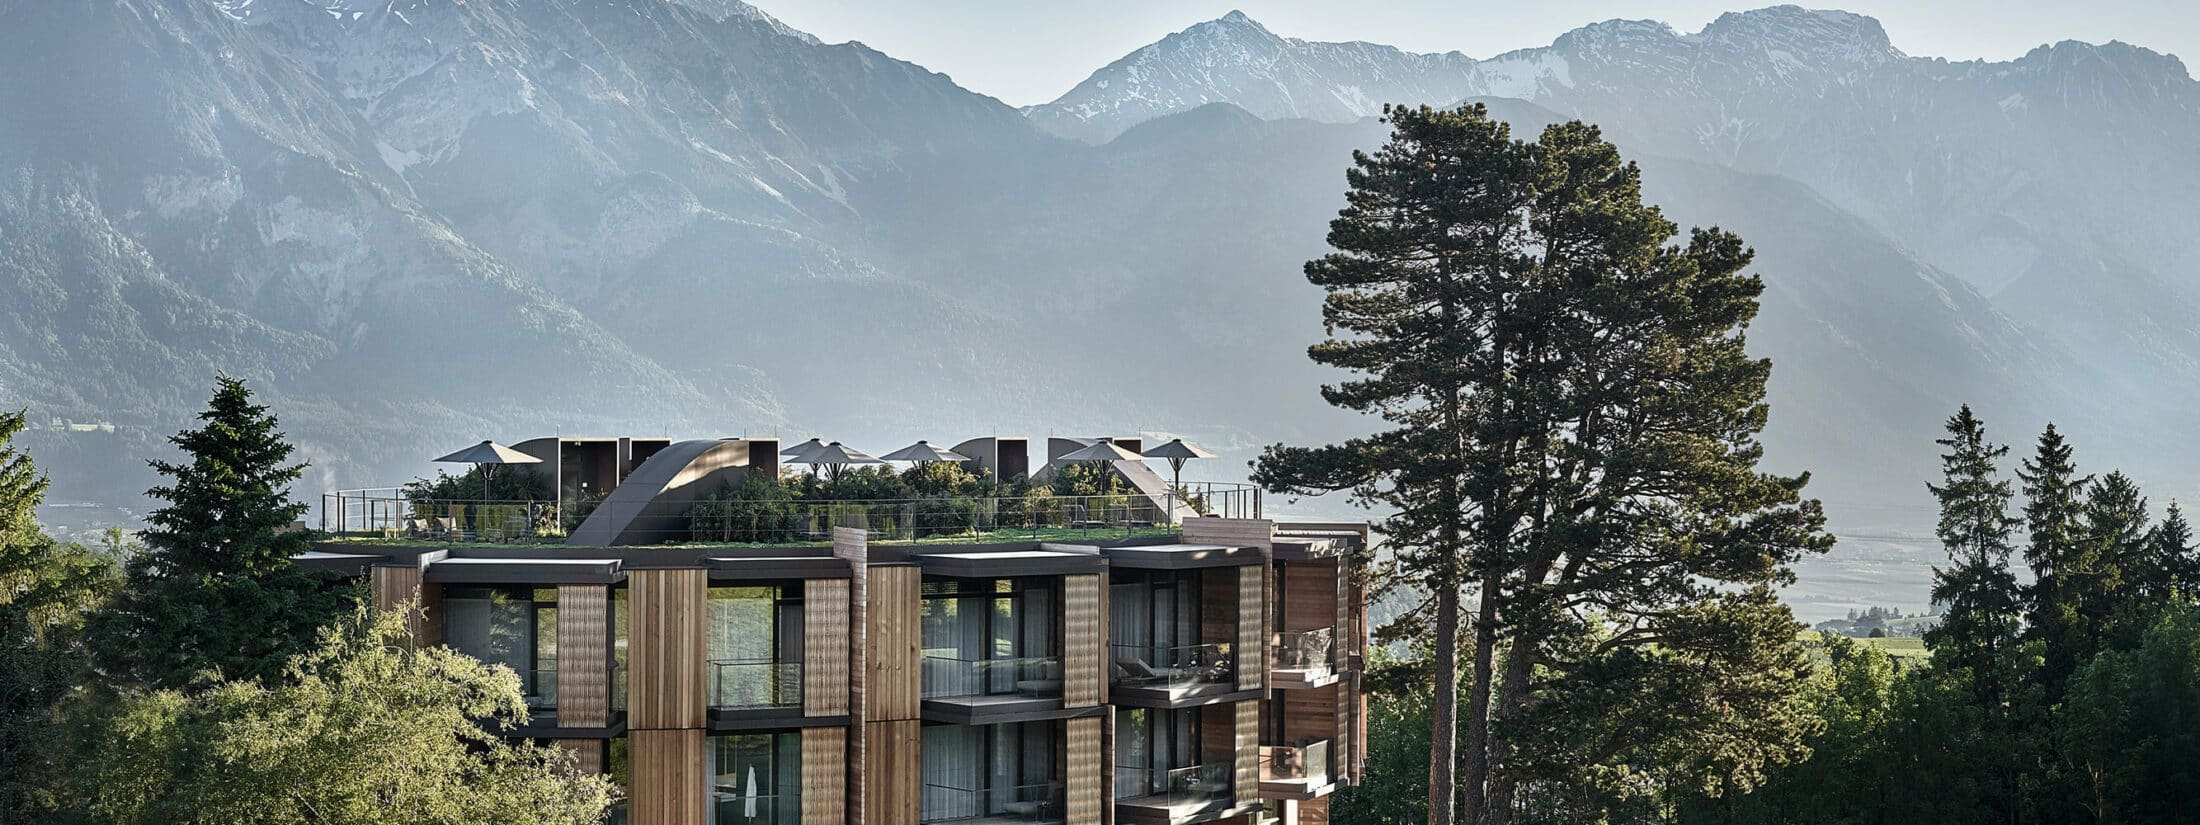 Lanserhof Resort Lans in front of the mountains